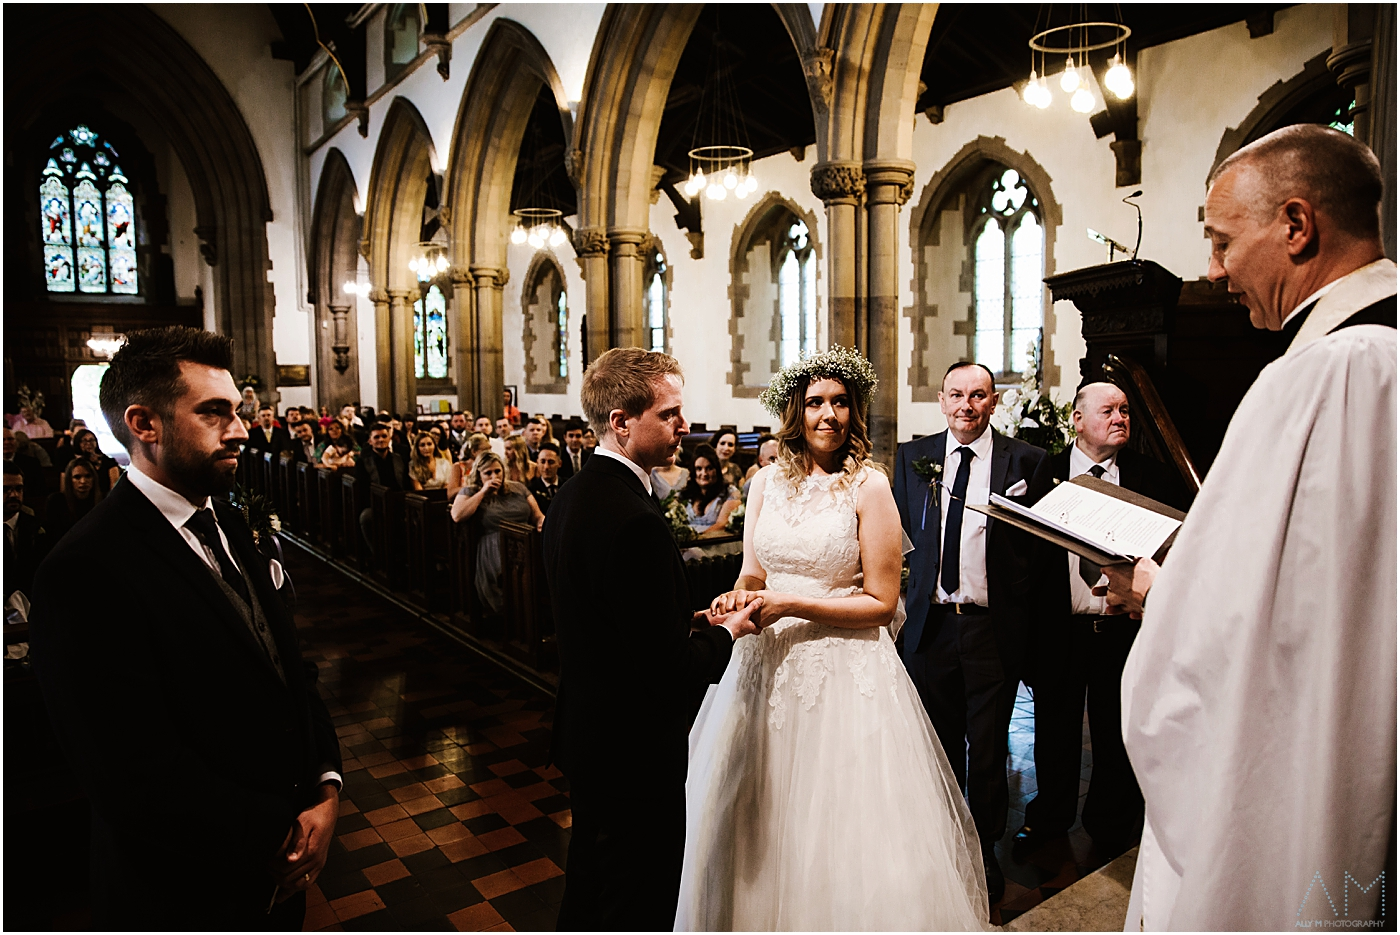 Bride and groom at St Marks church in manchester